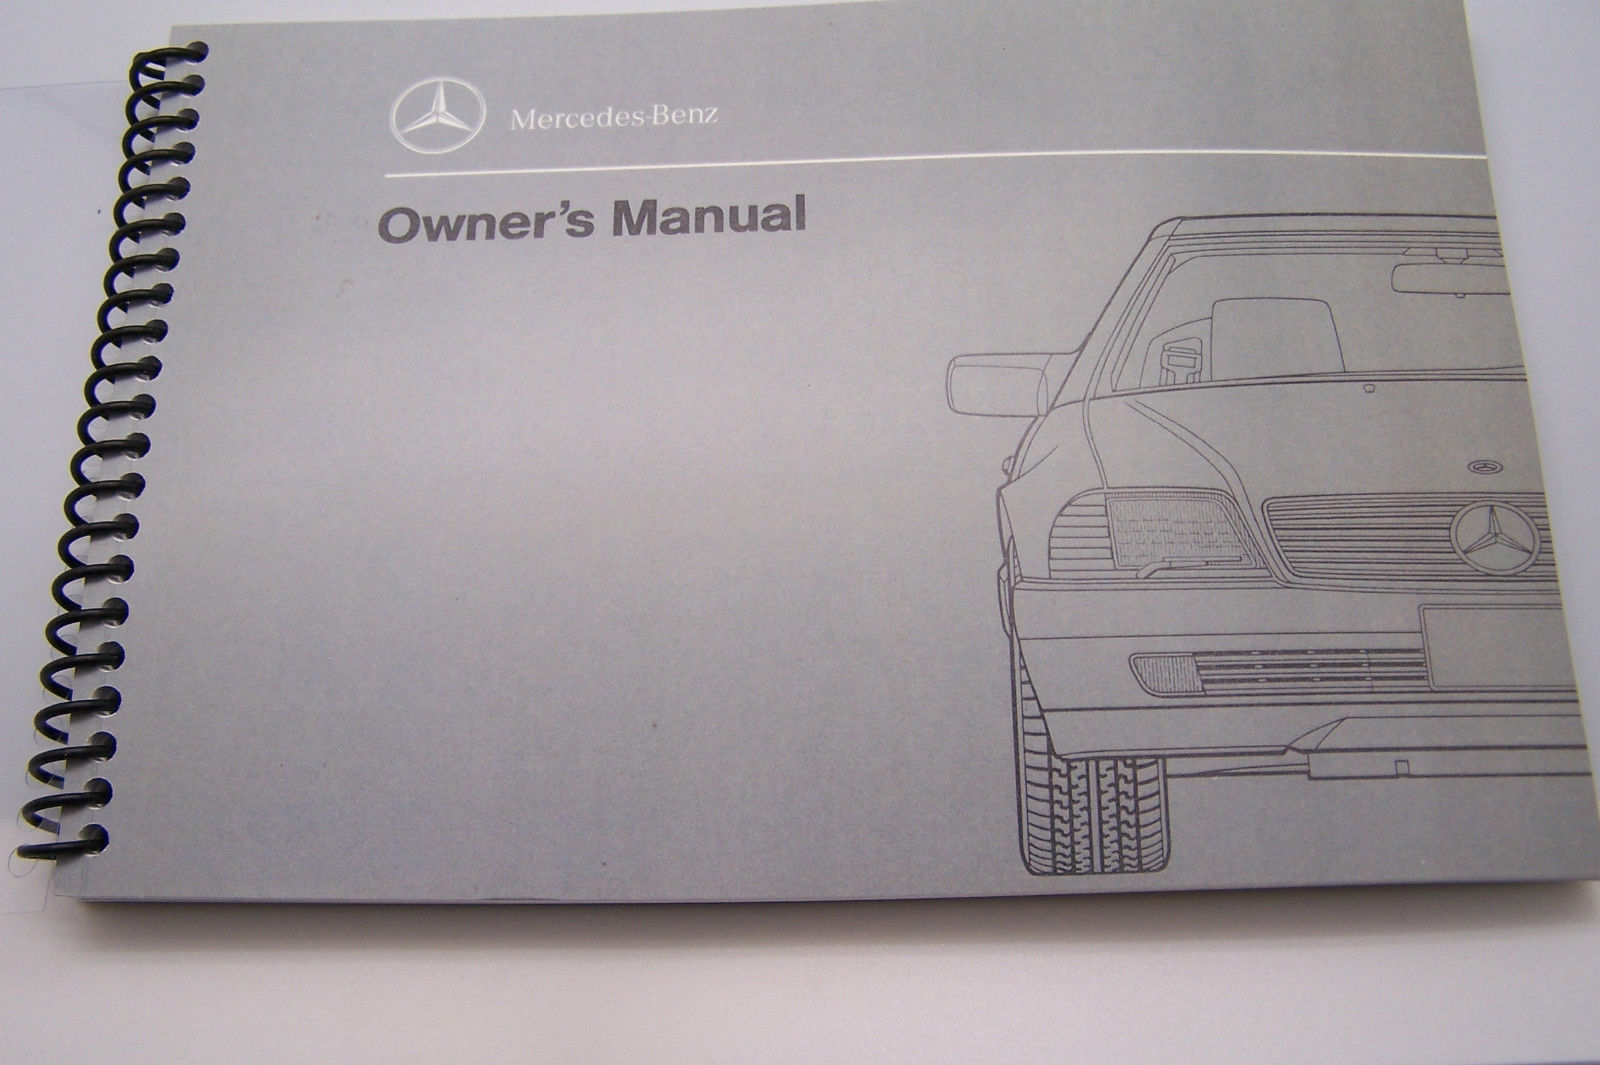 1992 1991 1990 Mercedes 500SL 300SL Owners Manual Parts W129 Service  reprint - $52.46